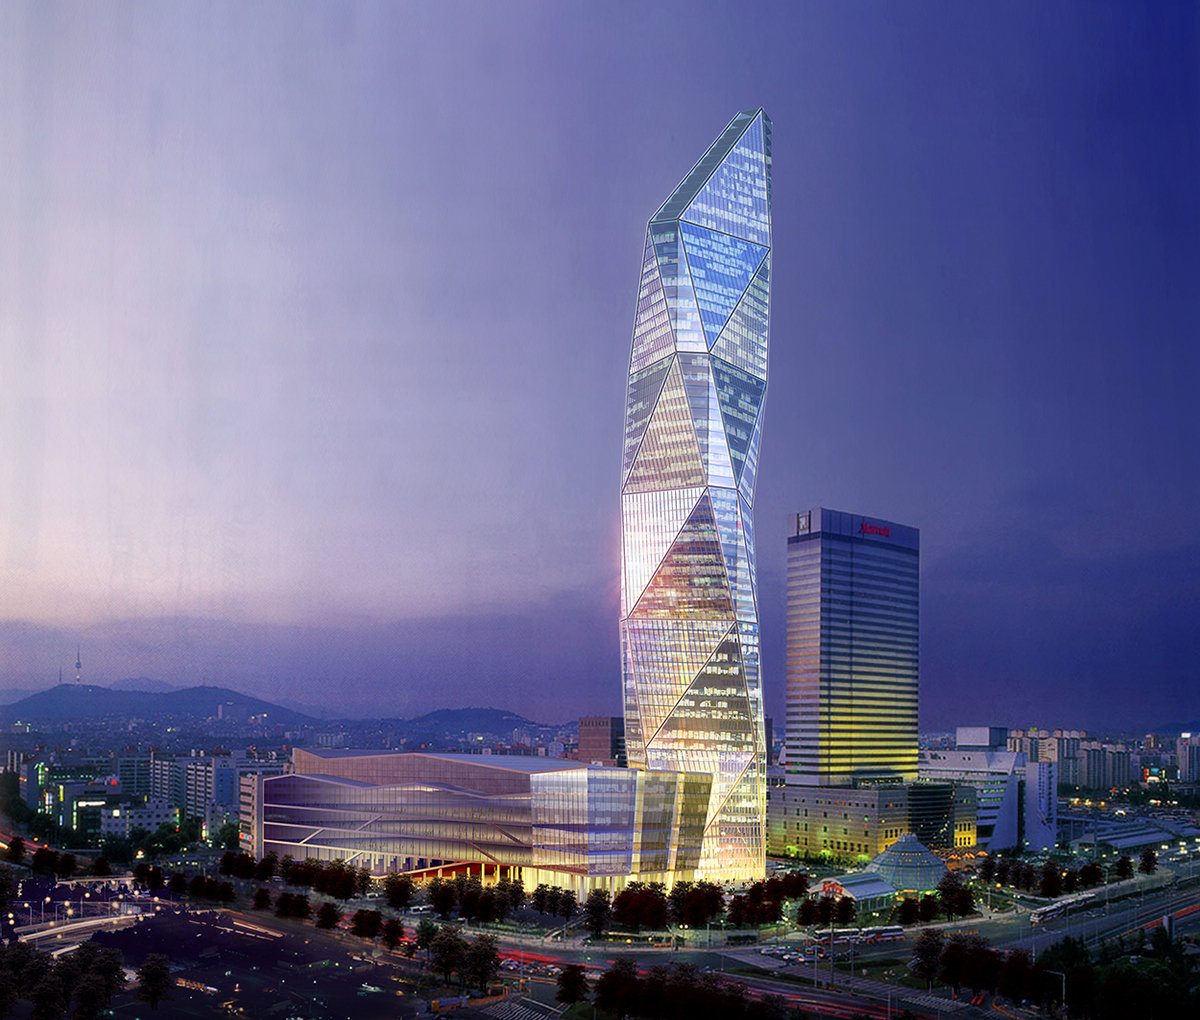 6 tskp central city company central city phase ii exterior rendering night time lighting and traffic 1400 xxx q85